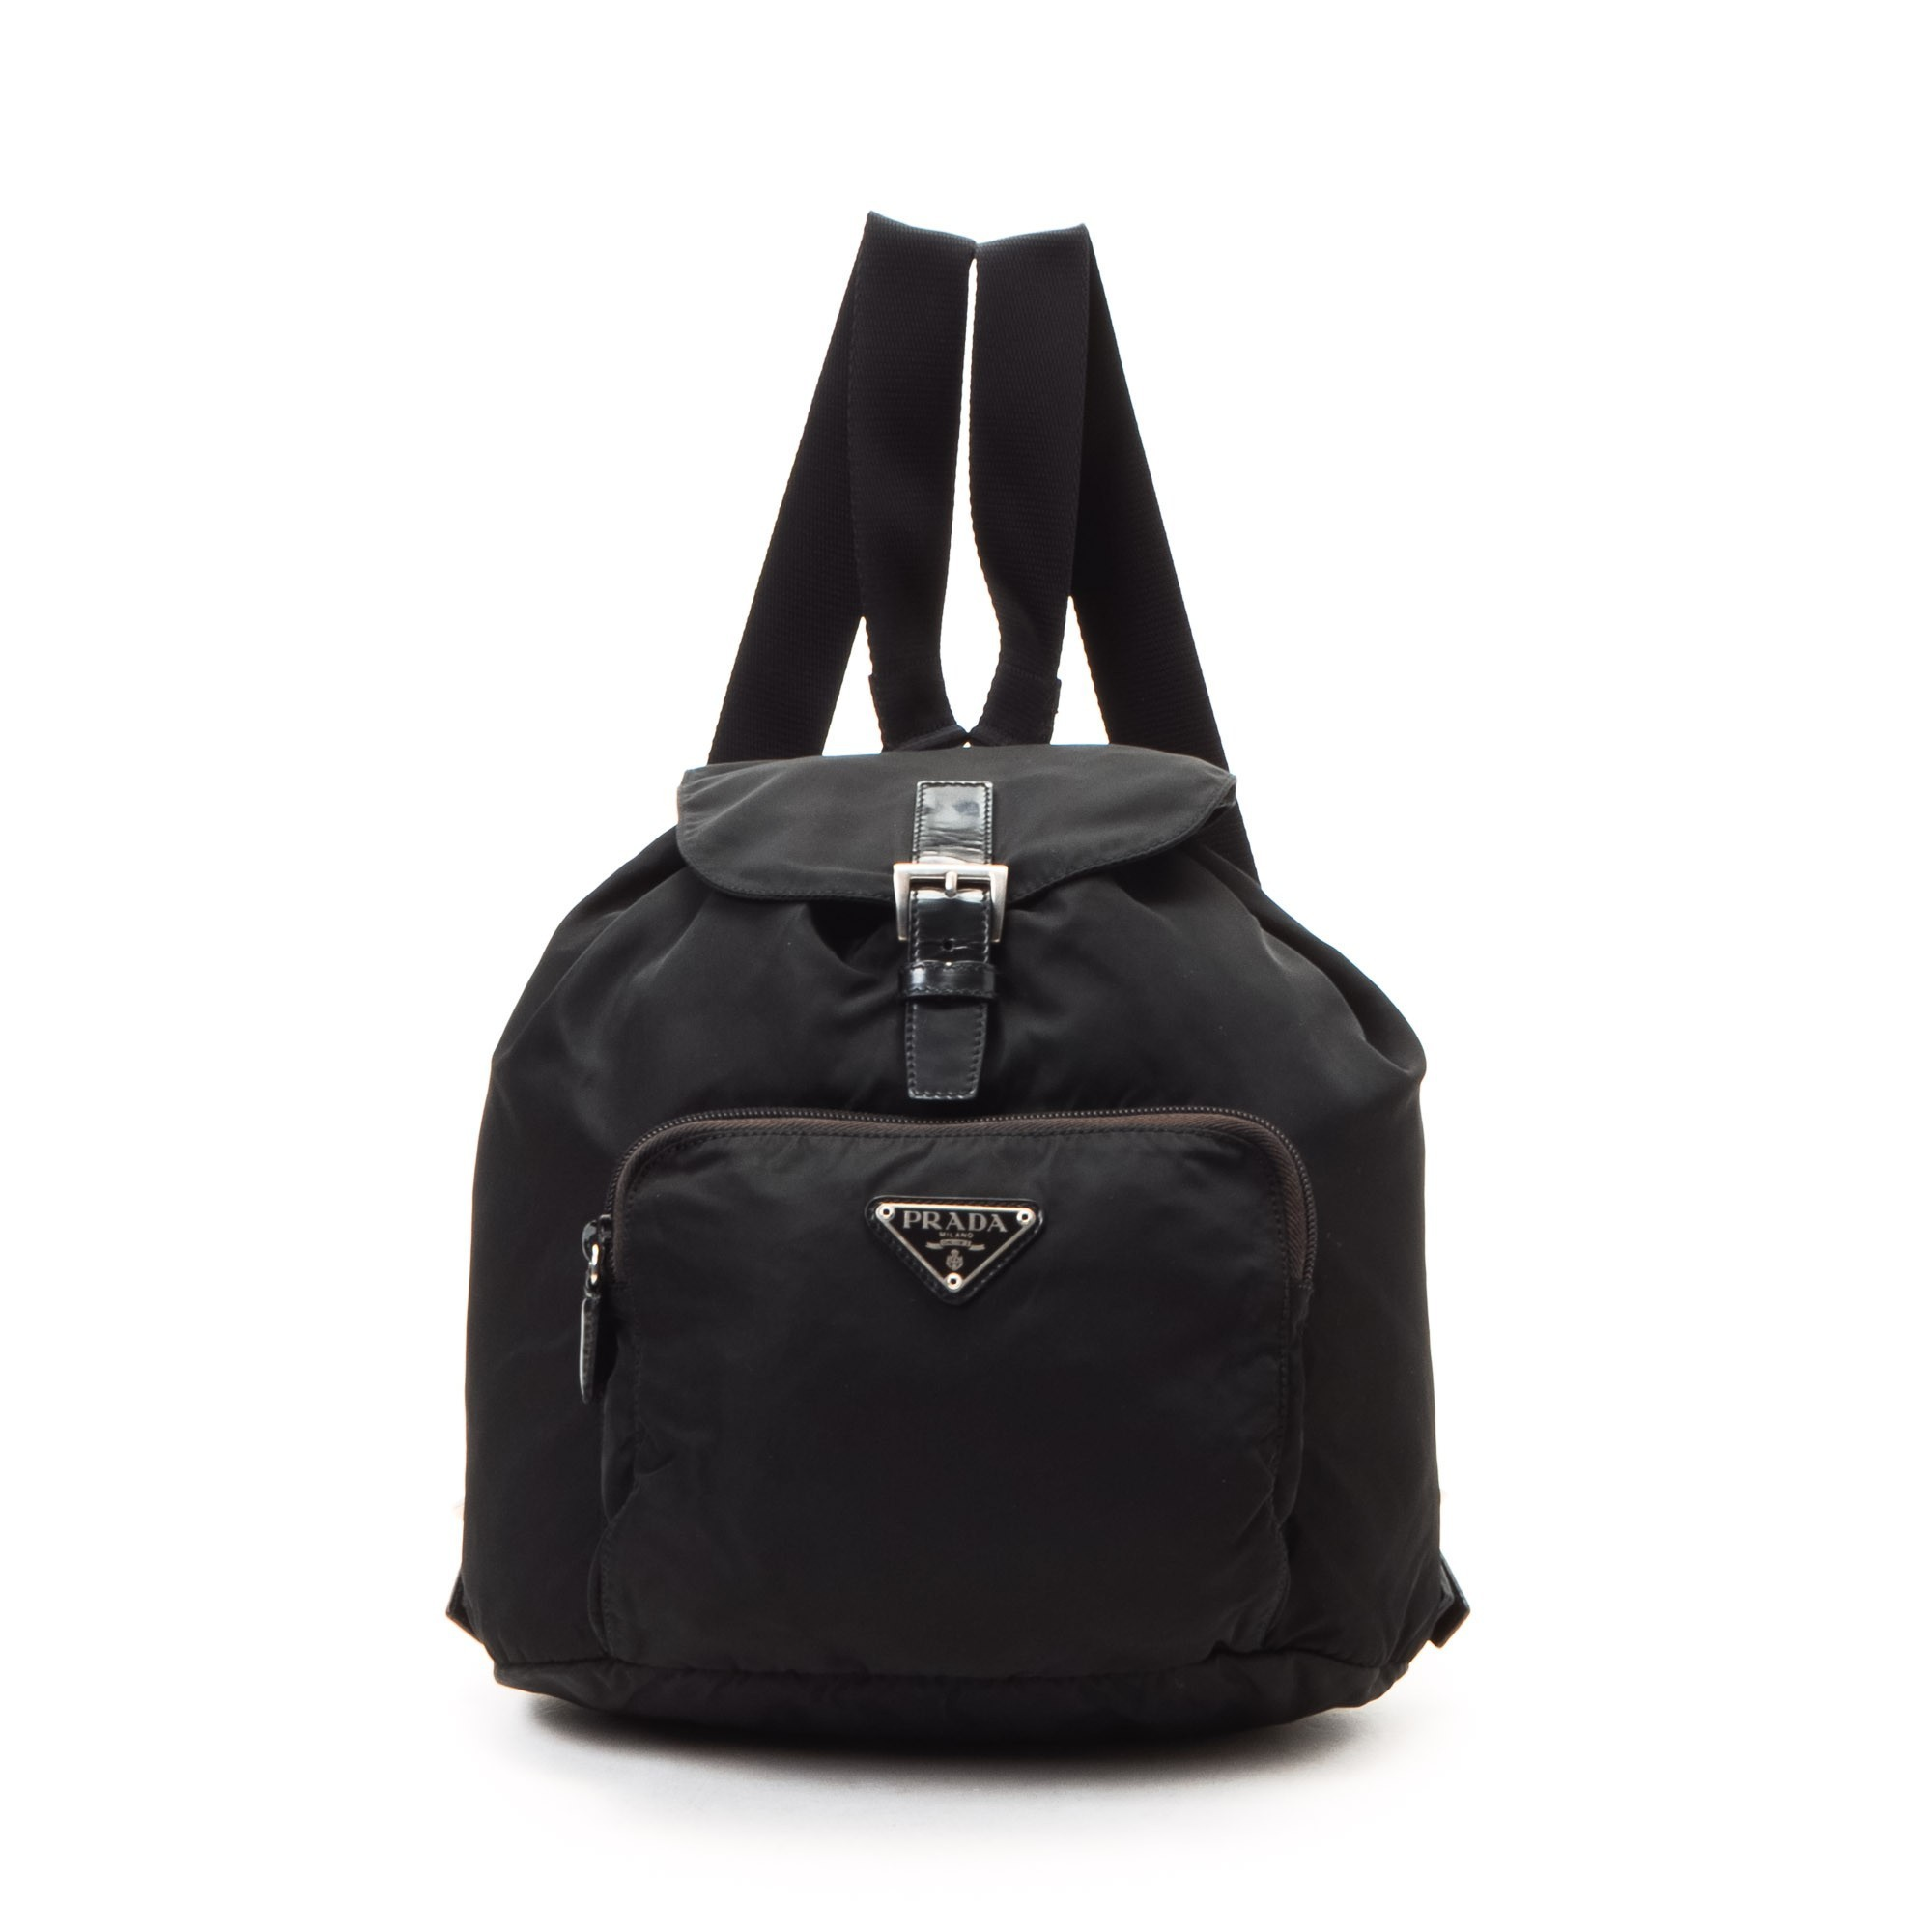 Prada Tessuto Backpack Black Nylon Travel Bag - LXR\u0026amp;CO Vintage Luxury